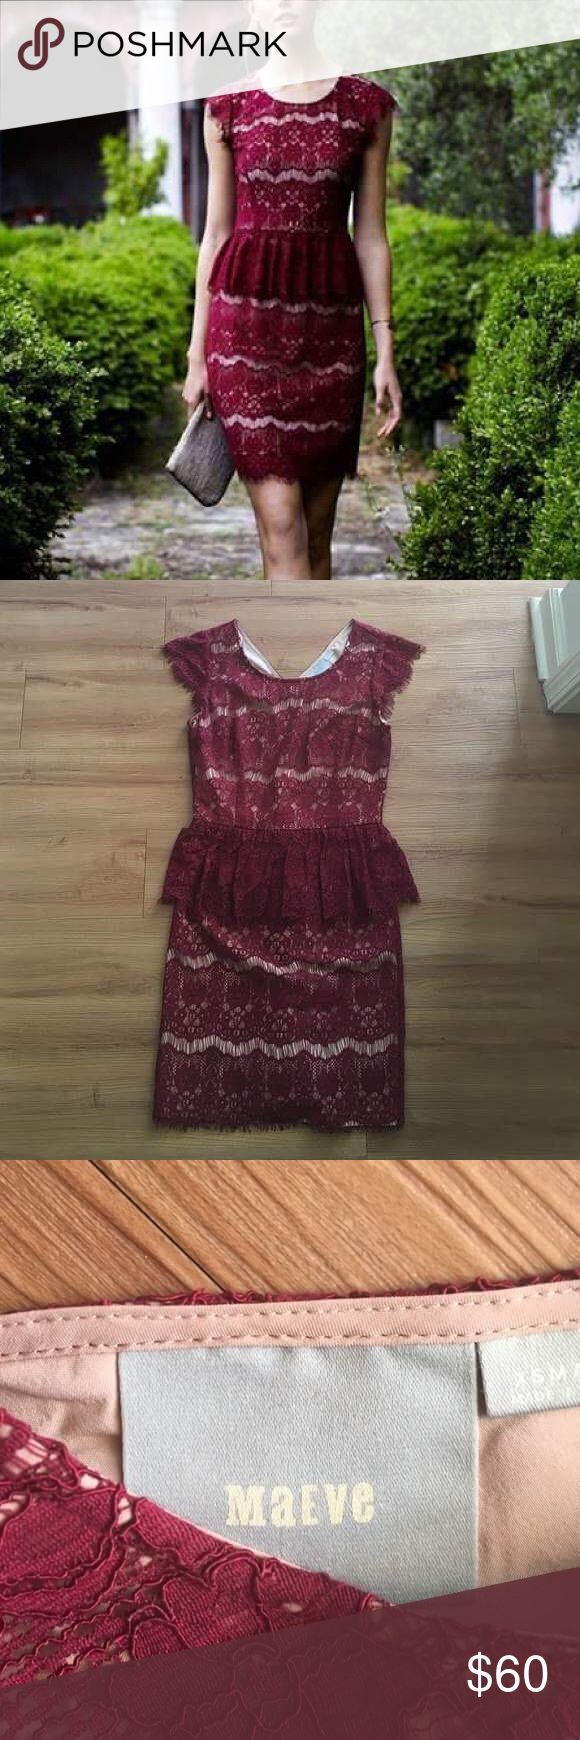 Anthropology Maeve Elsa Red Lace Peplum Dress Beautiful! Like new! Worn a handful of times. No defects in lace or fabric. Anthropologie Dresses Mini